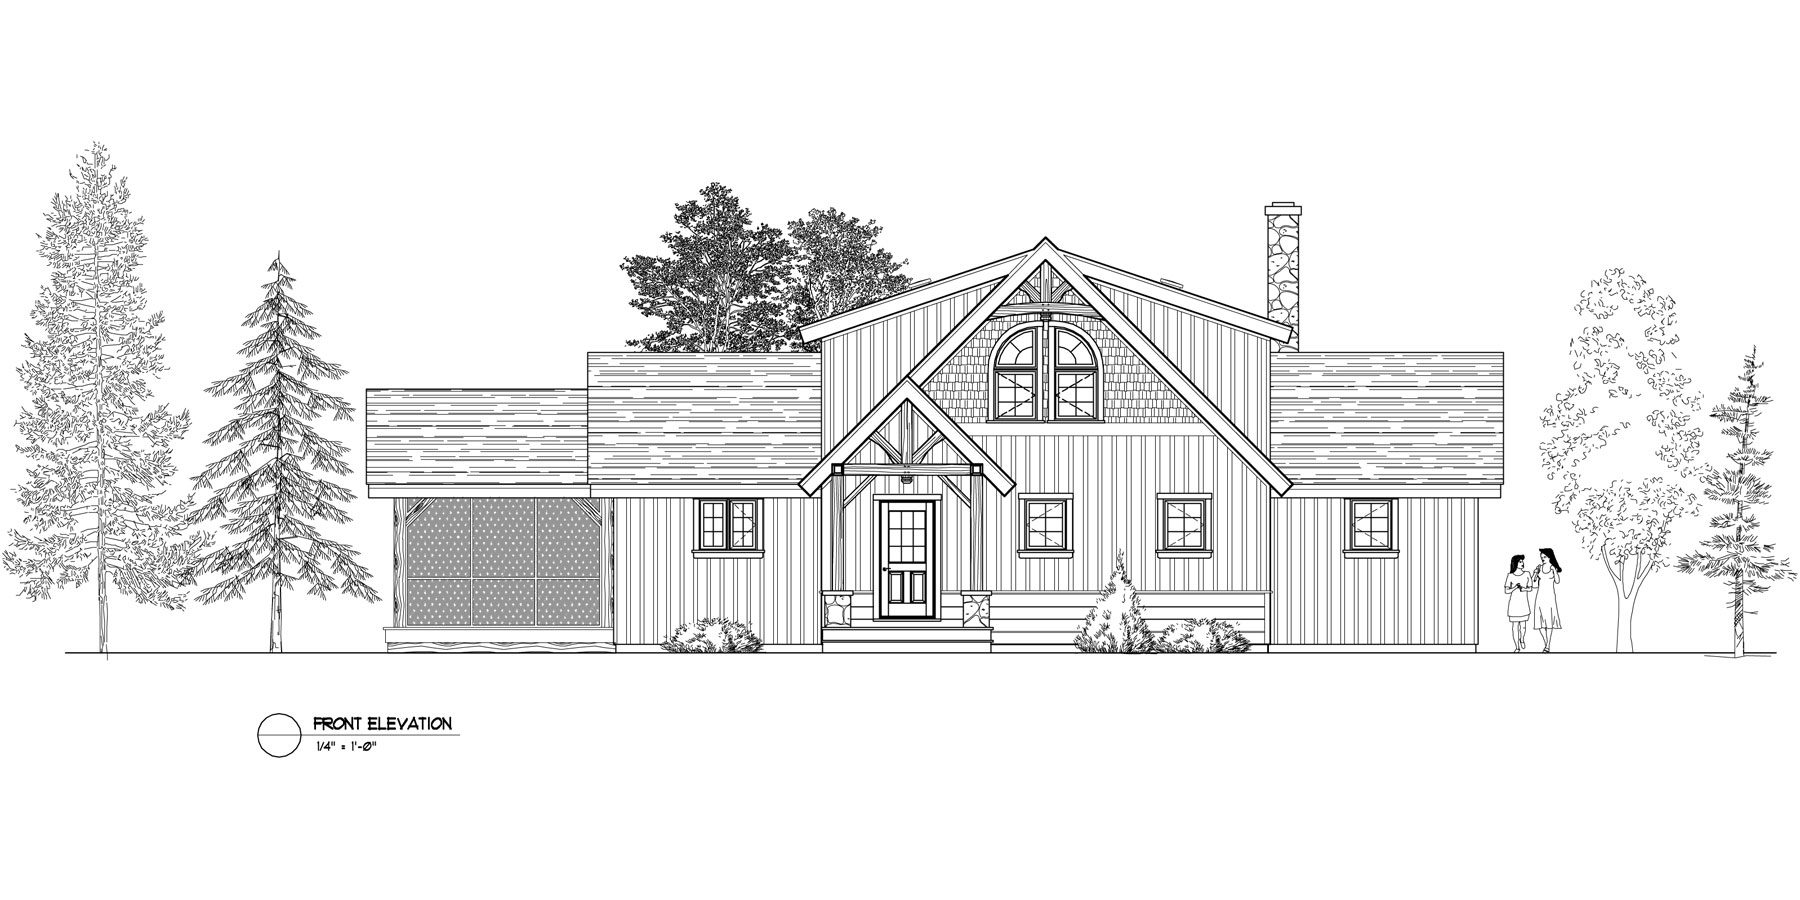 Normerica Timber Frames, House Plan, The Carleton 3115, Front Elevation